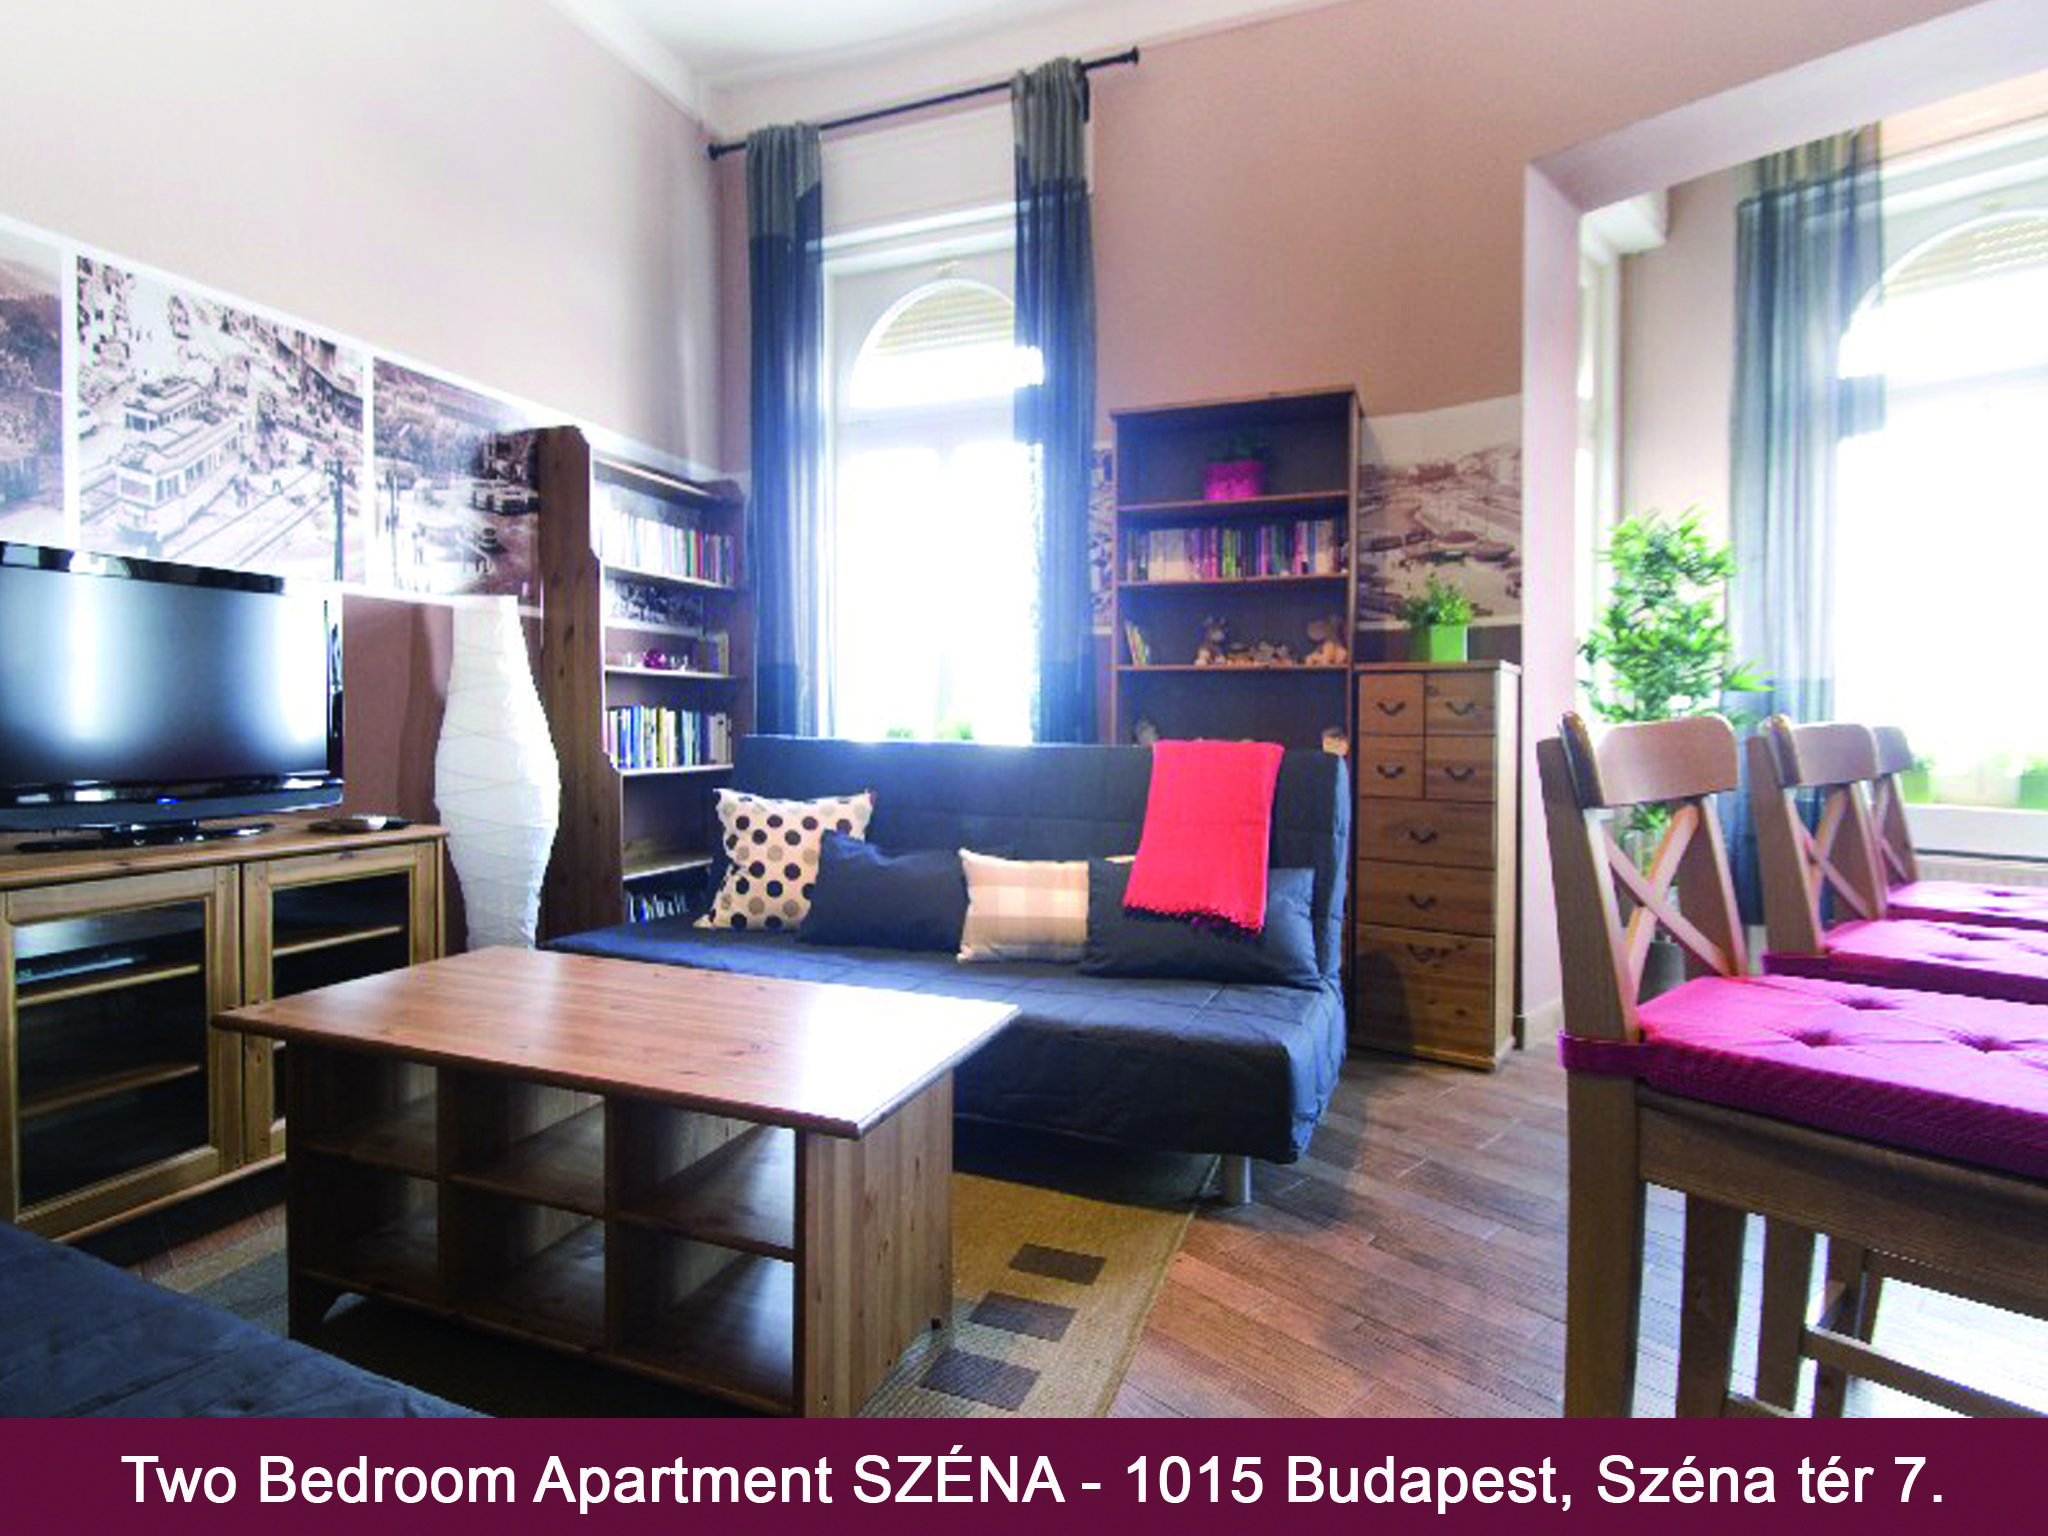 Dream Homes City Apartment Széna Budapest